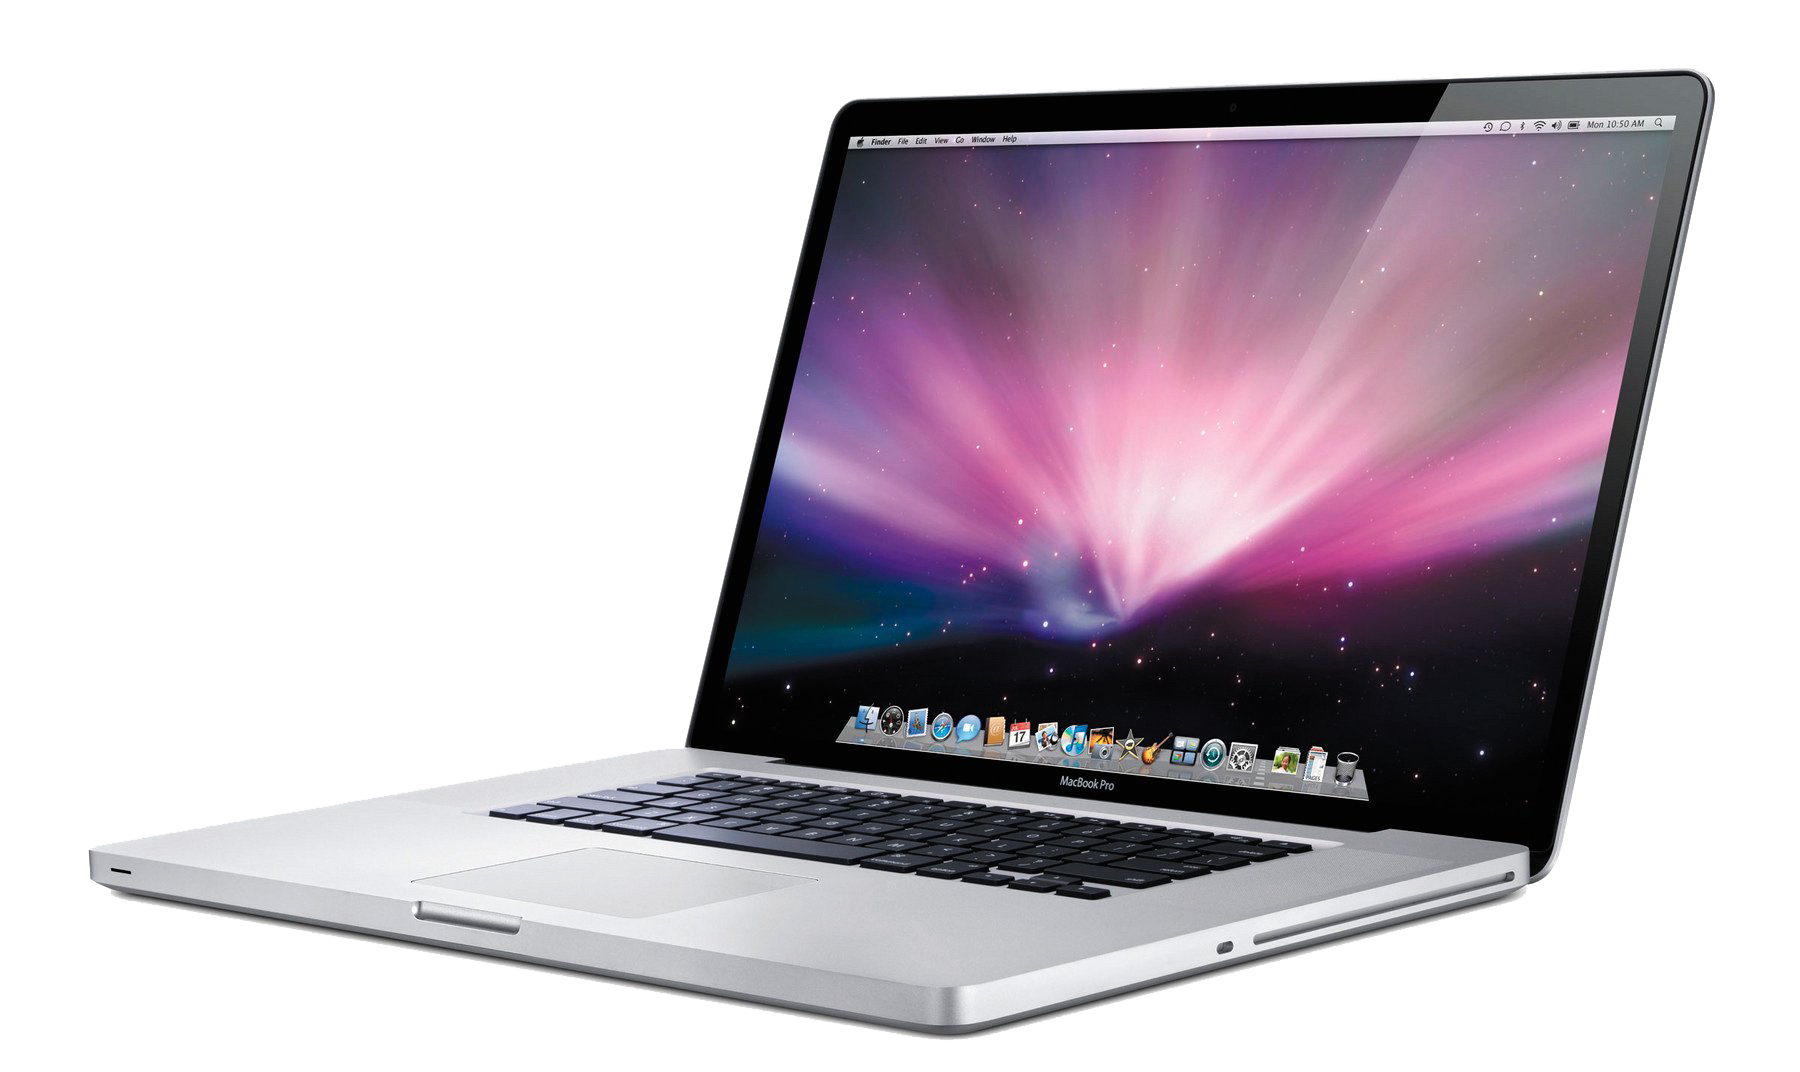 Macbook PNG images free download, apple macbook PNG.